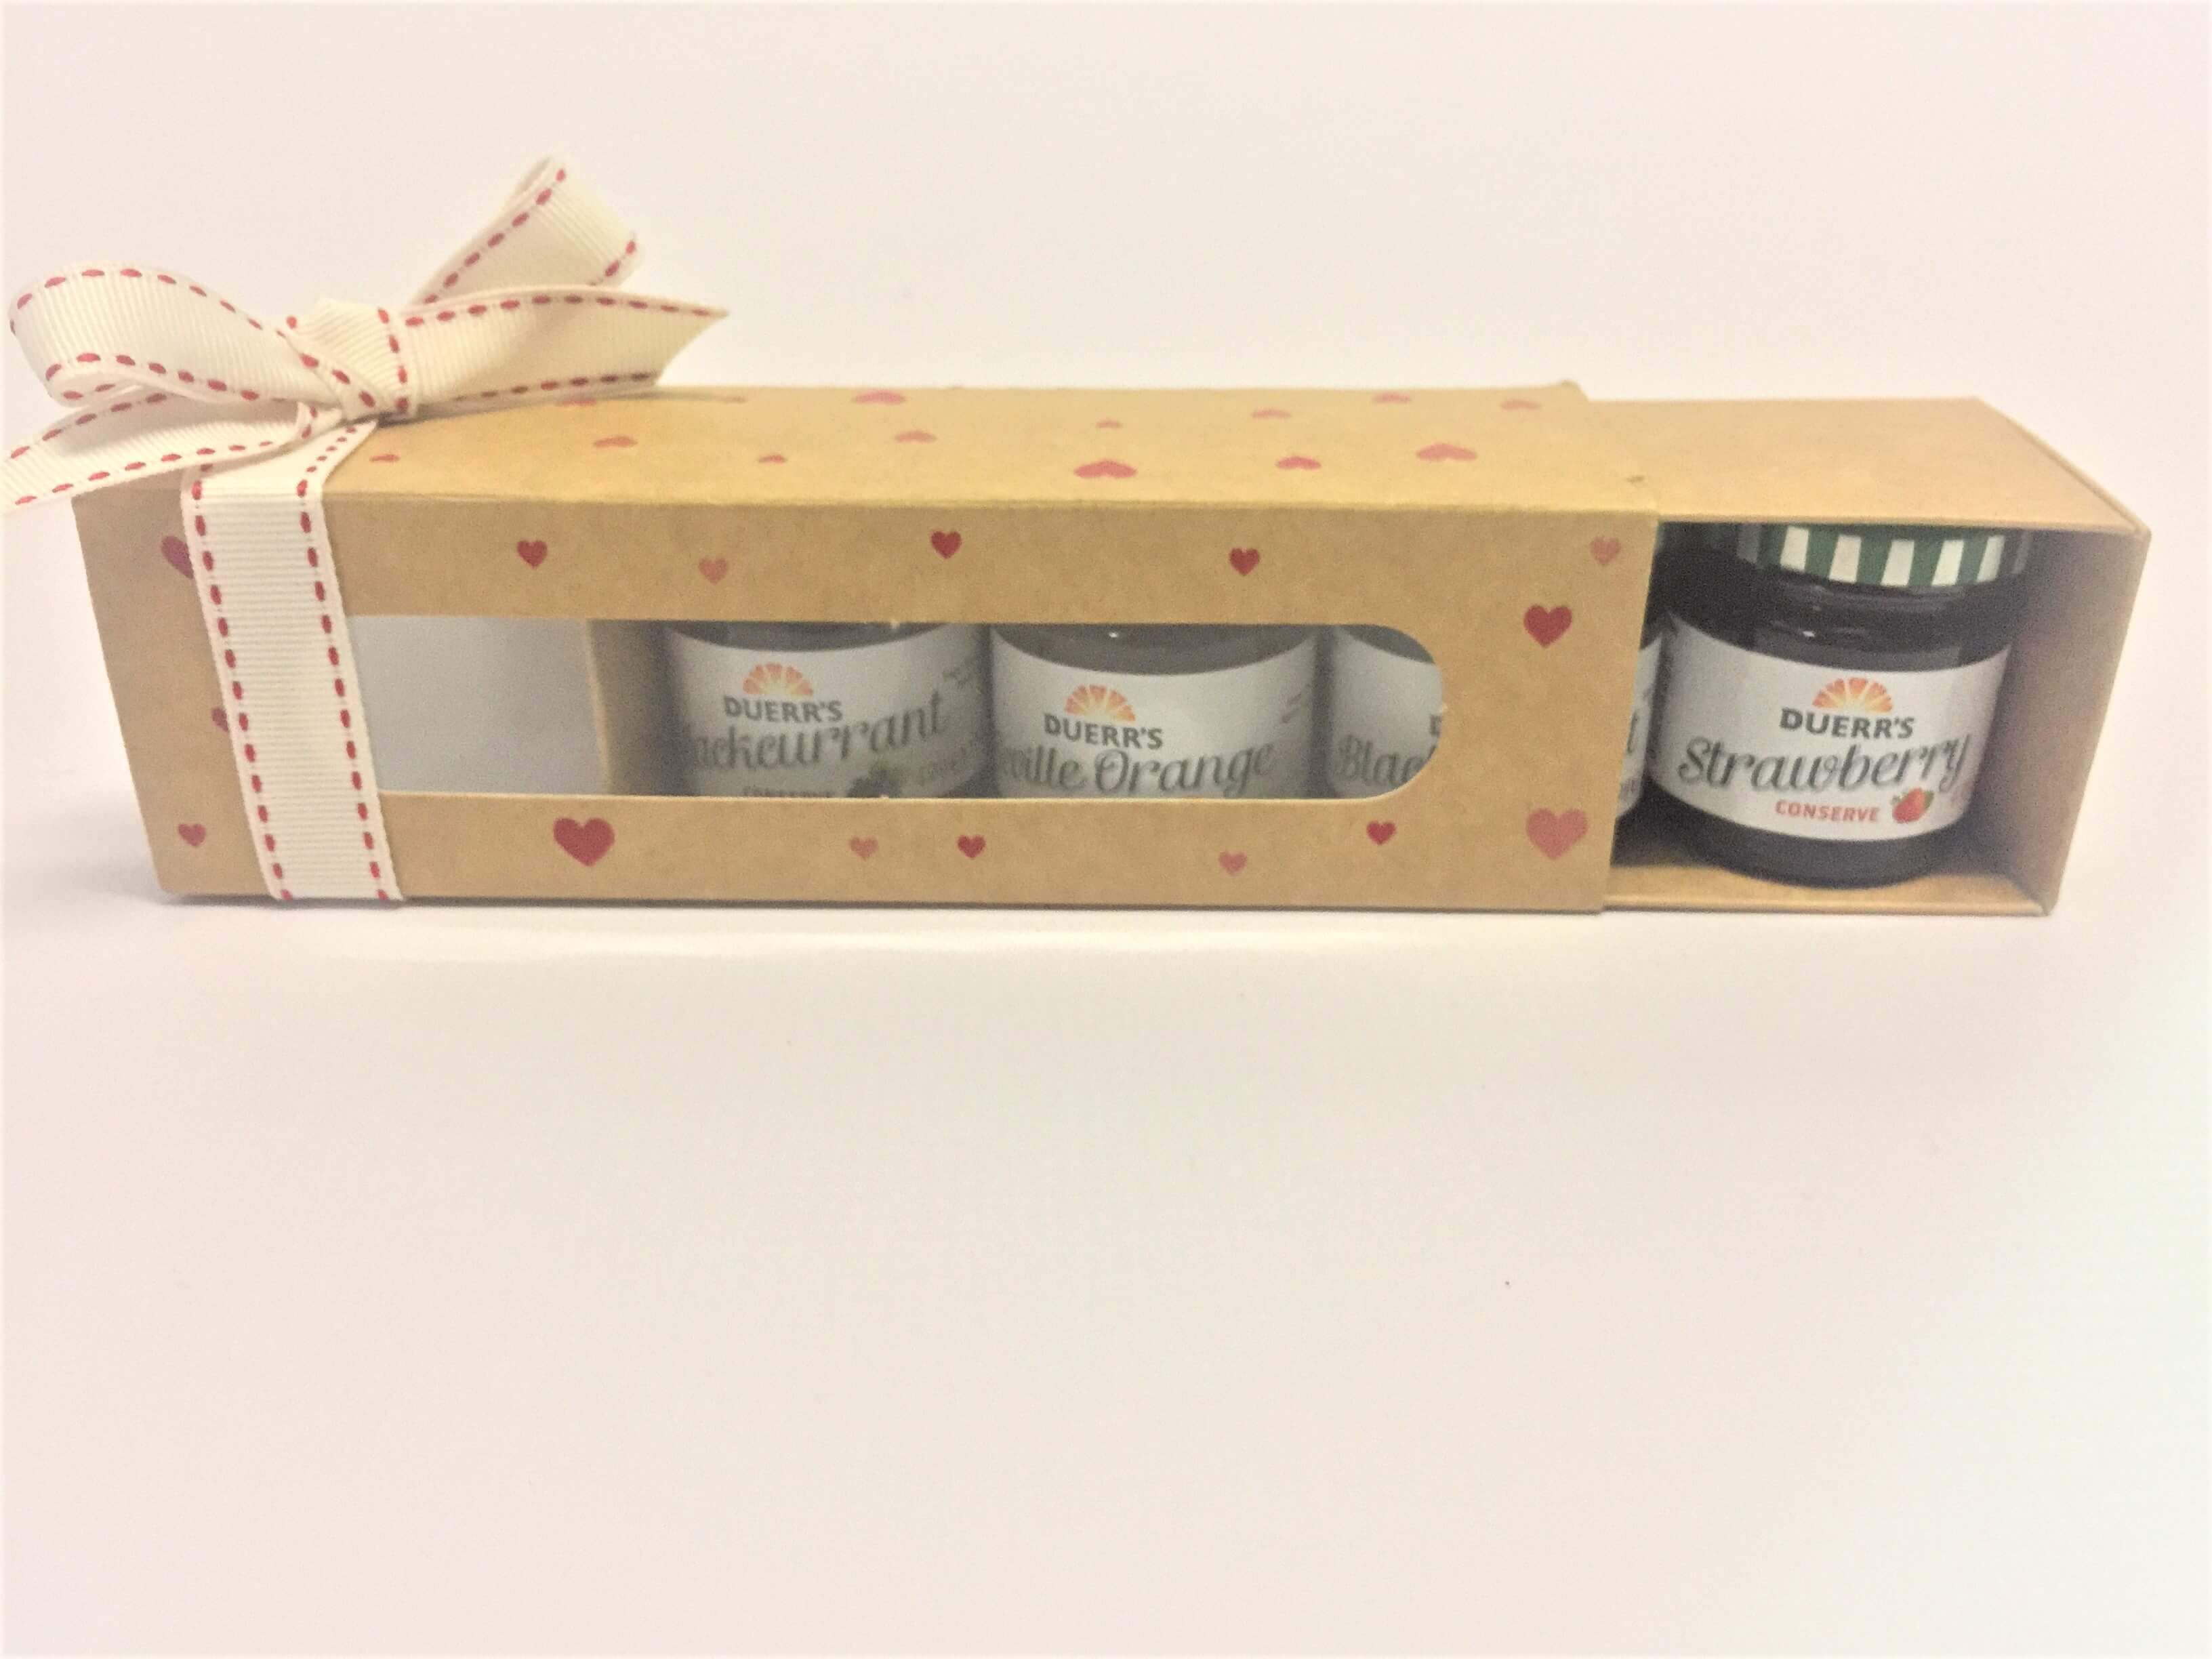 Kraft Printed Heart Windowed 6 Pack Macaron Boxes also fit 4 mini jam jars